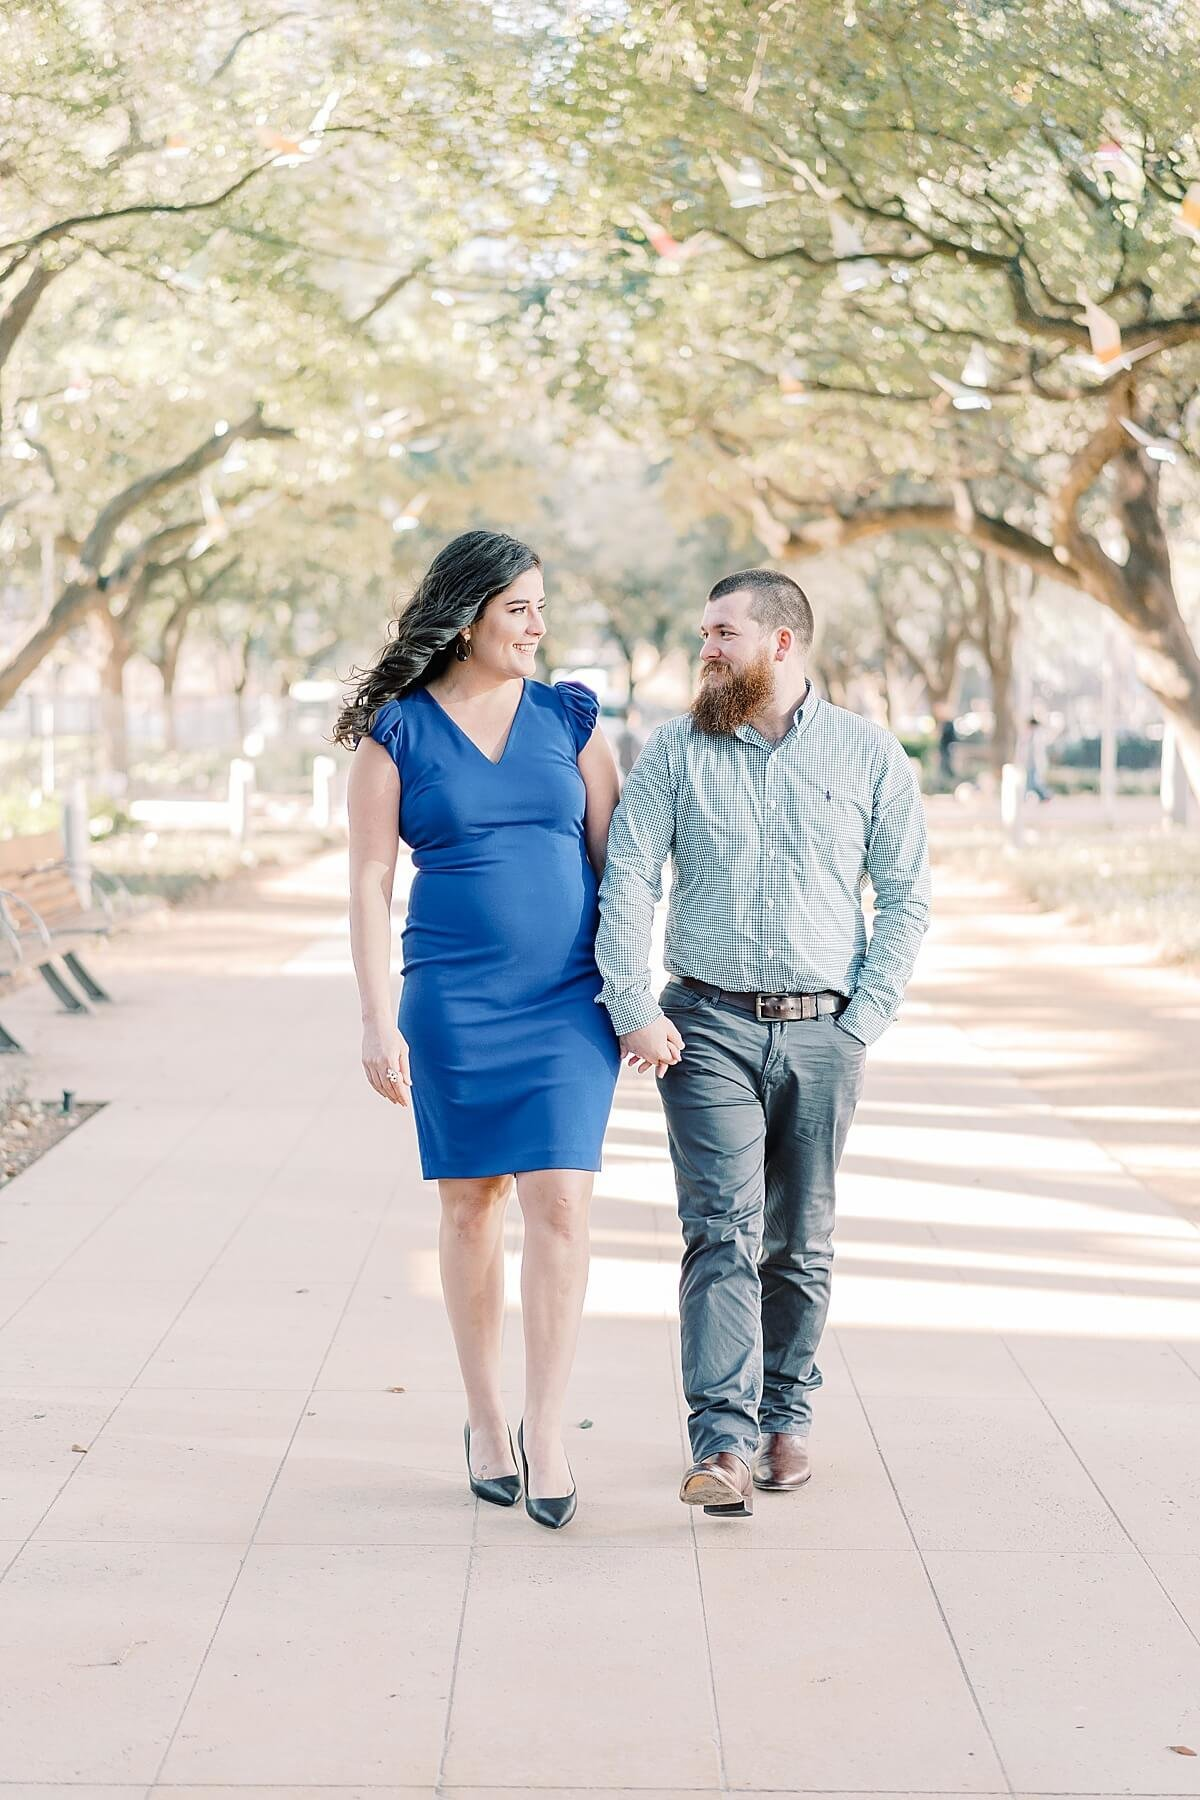 Discovery-Green-Engagement-Photos-Alicia-Yarrish-Photography_0008